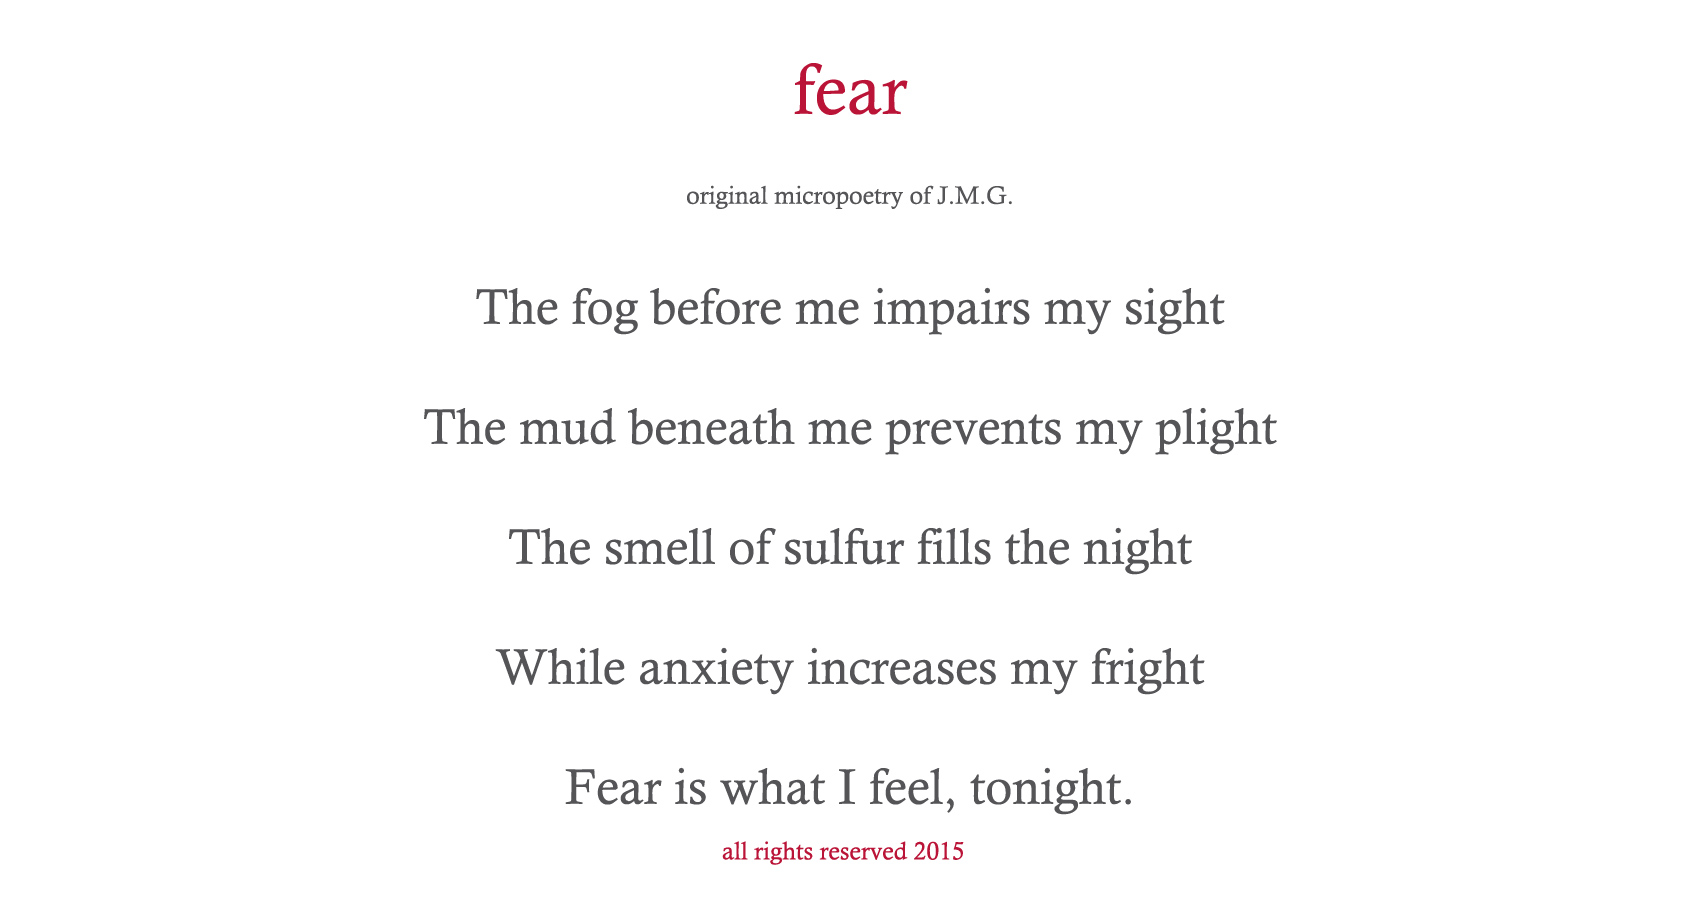 spillwords.com Fear by J.M.G.